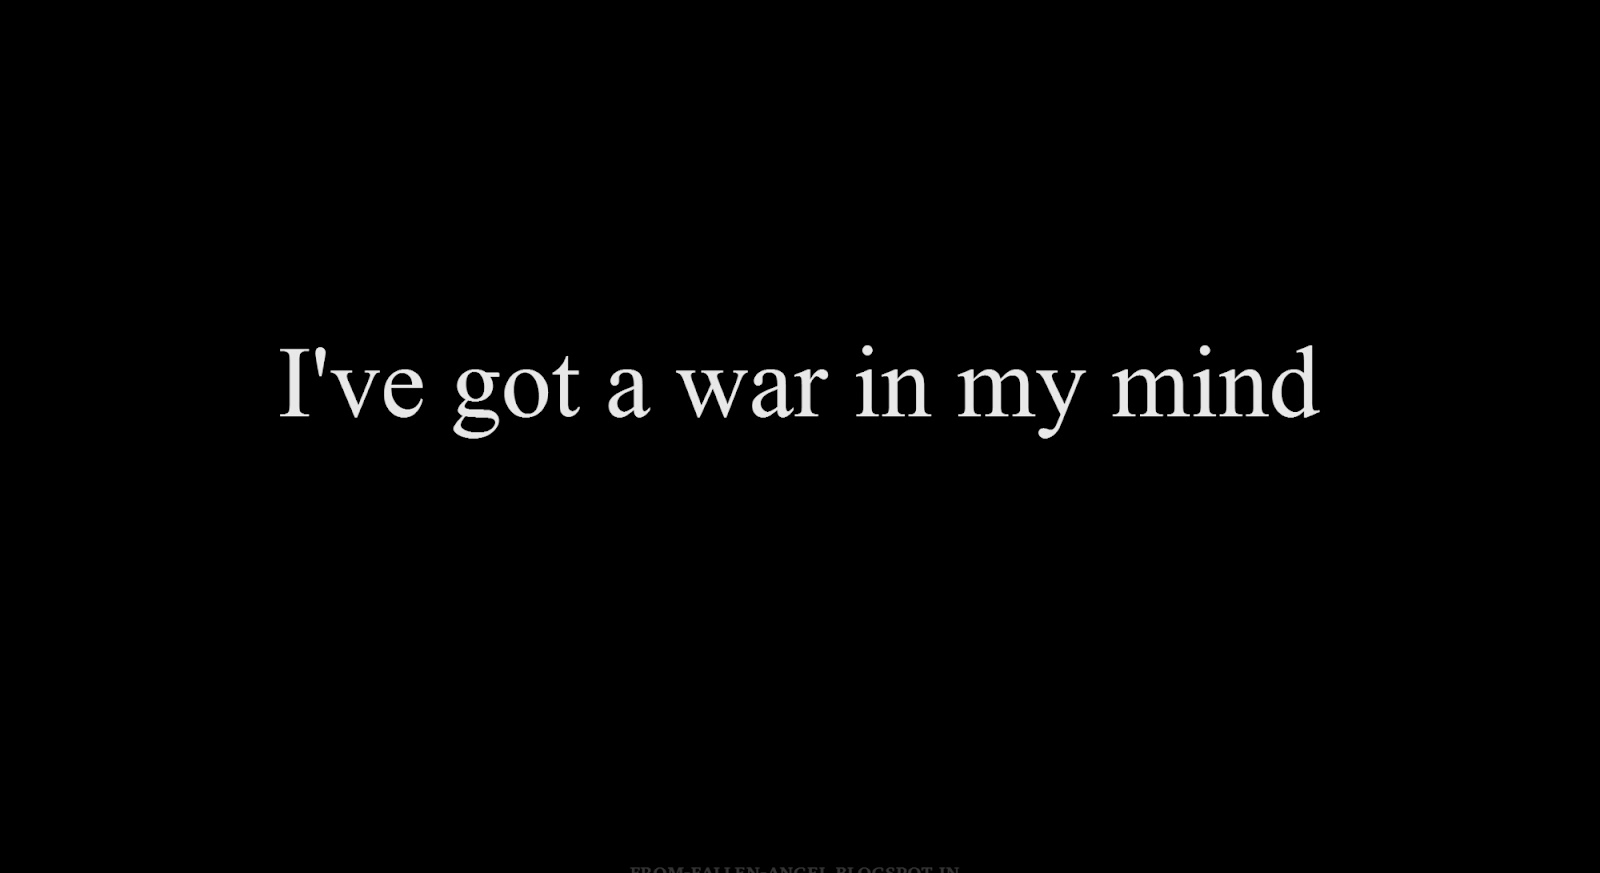 I've got a war in my mind